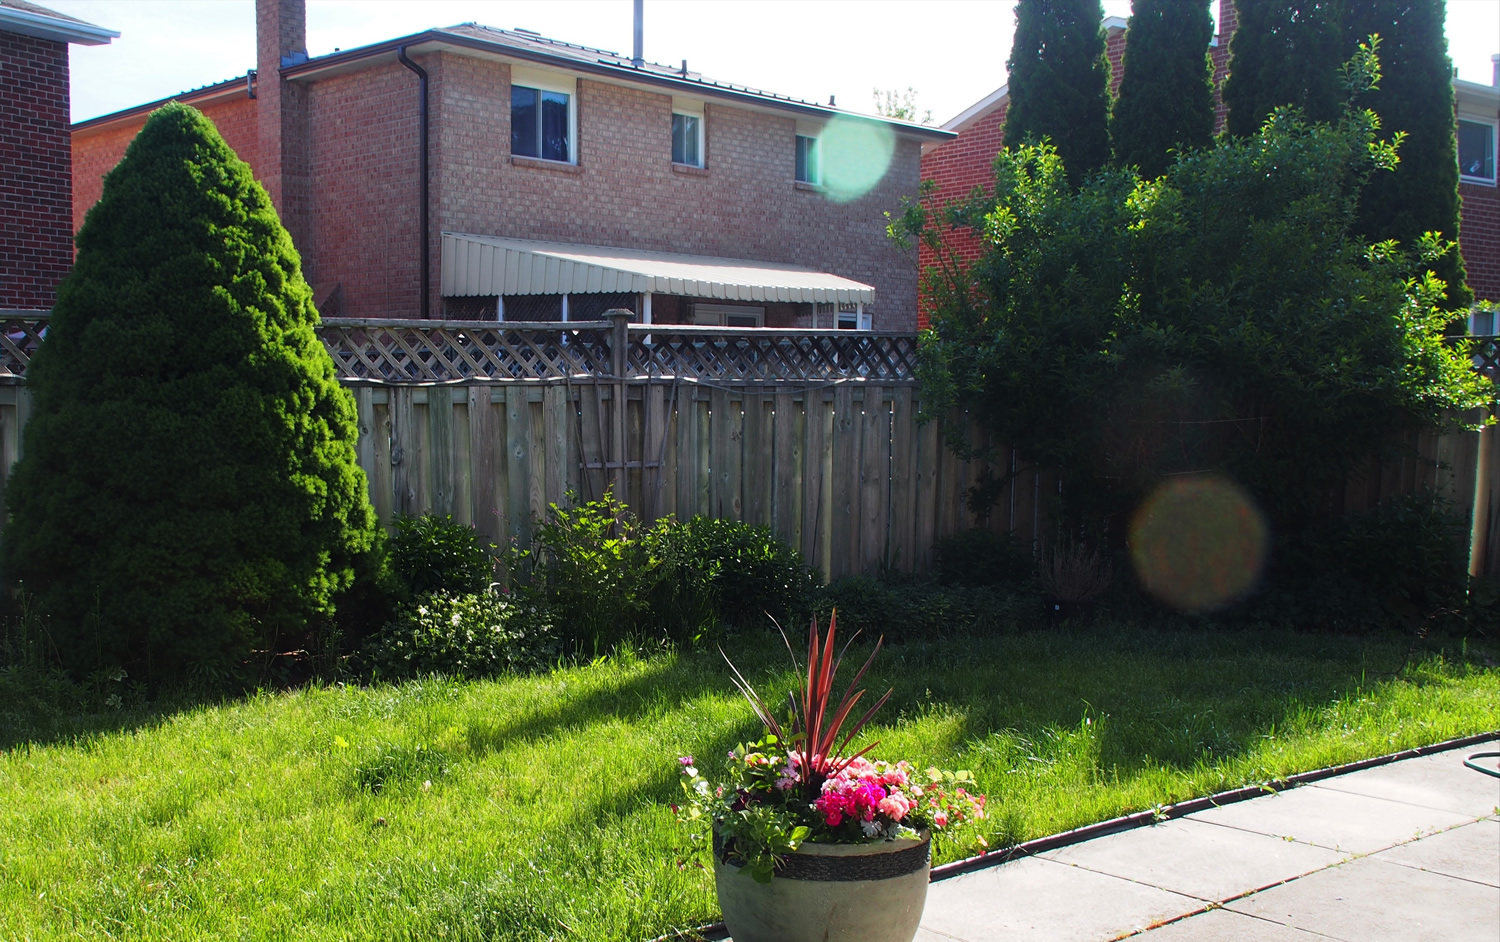 Back Left Corner and Back Garden - Before